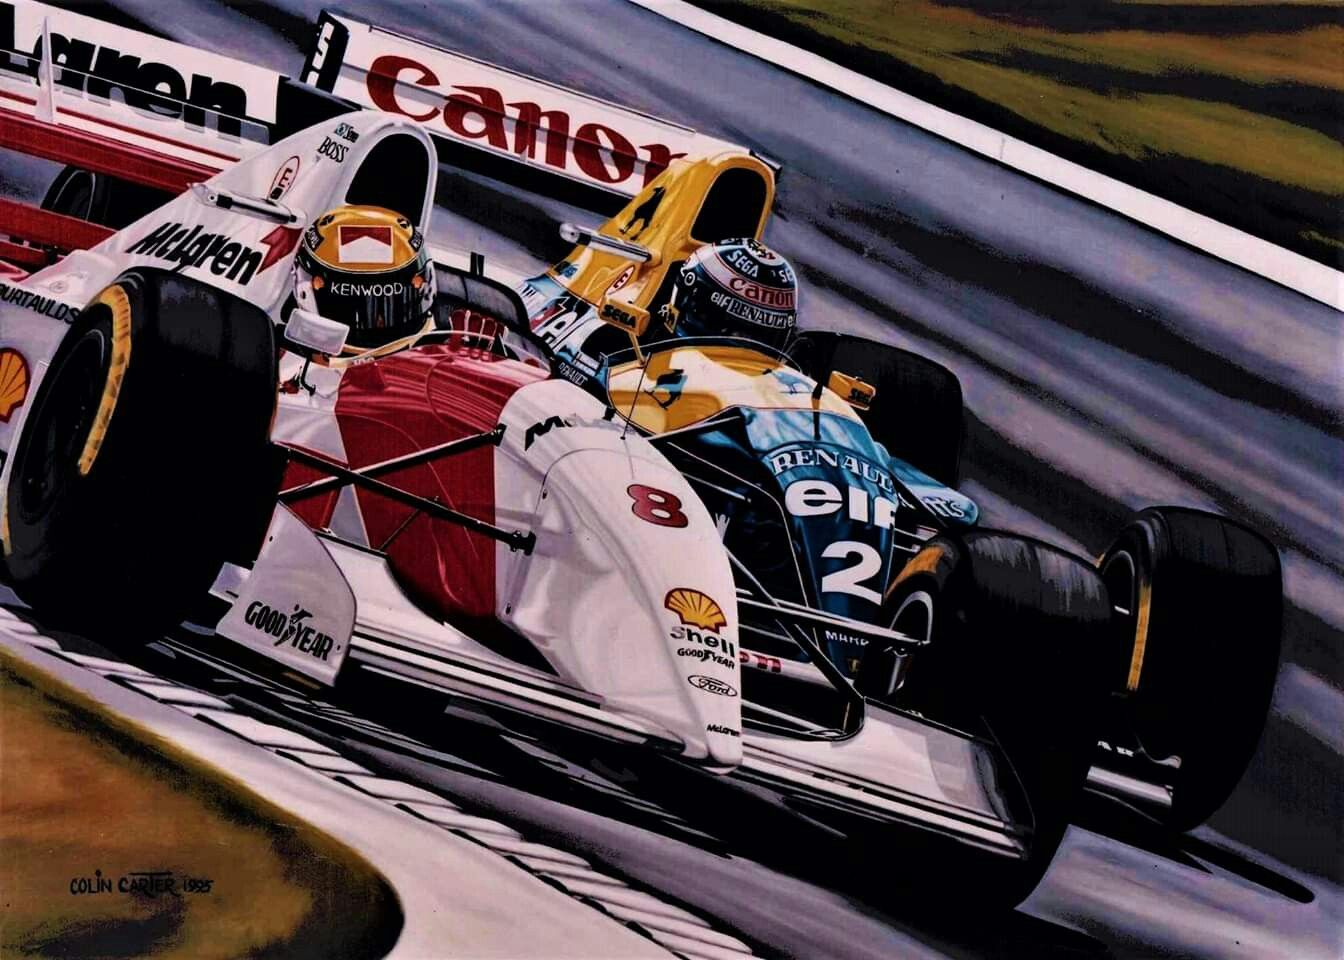 Pin By Old Weird Herald On Auto Racing With Images Ayrton